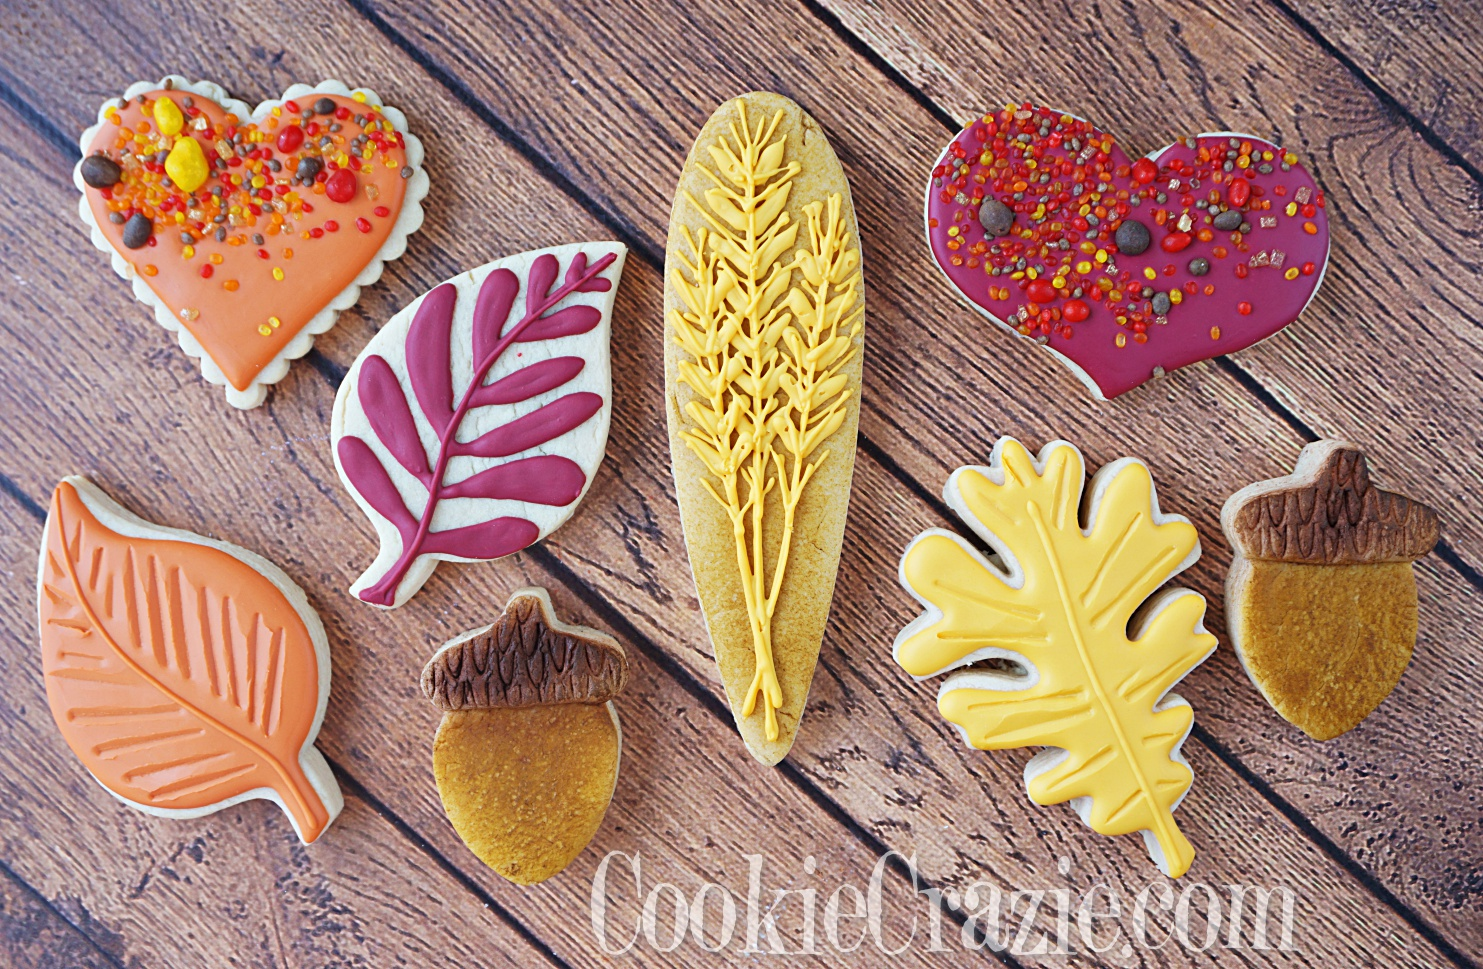 Thanksgiving Wheat Decorated Sugar Cookie YouTube video  HERE